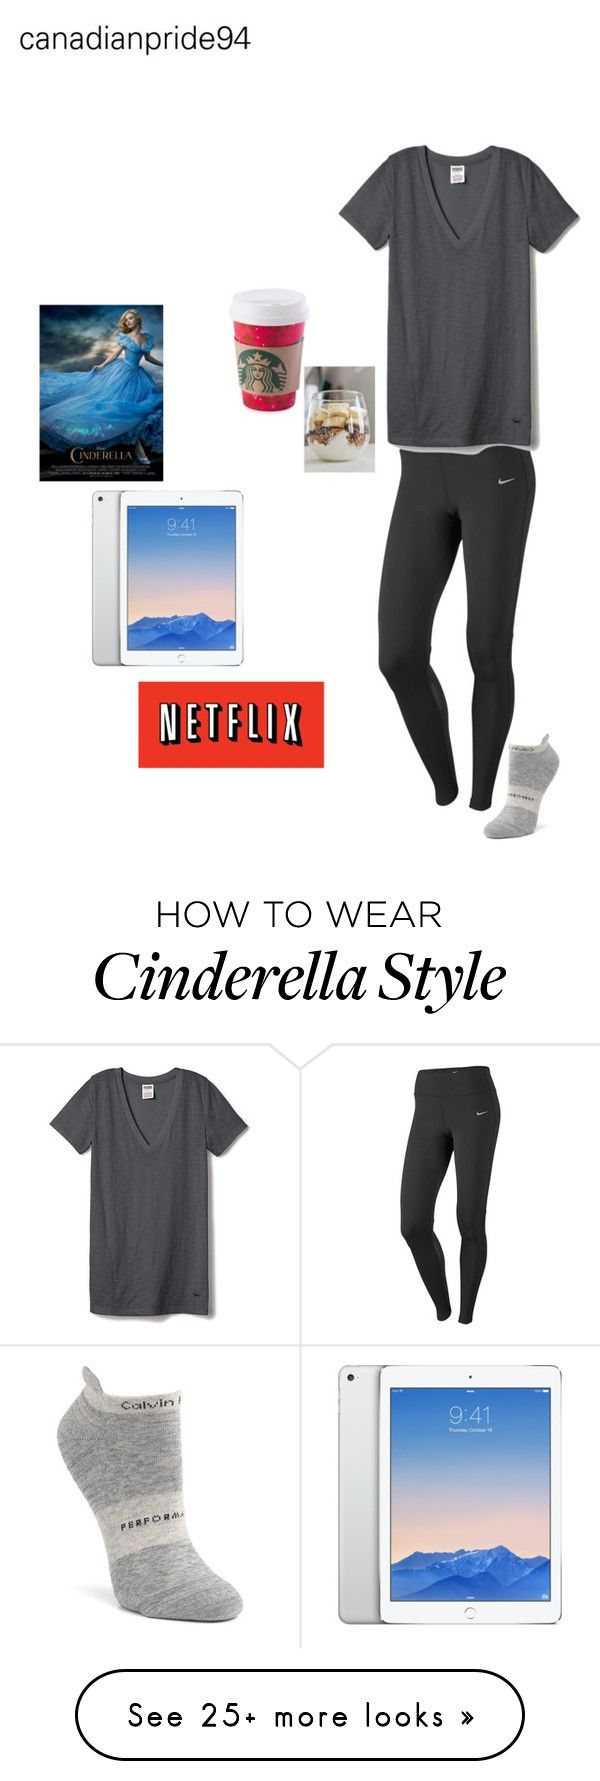 """""""night in with Johnny"""" by canadianpride94 on Polyvore featuring NIKE, Calvin Klein, Victoria's Secret PINK, women's clothing, women's fashion, women, female, woman, misses and juniors"""